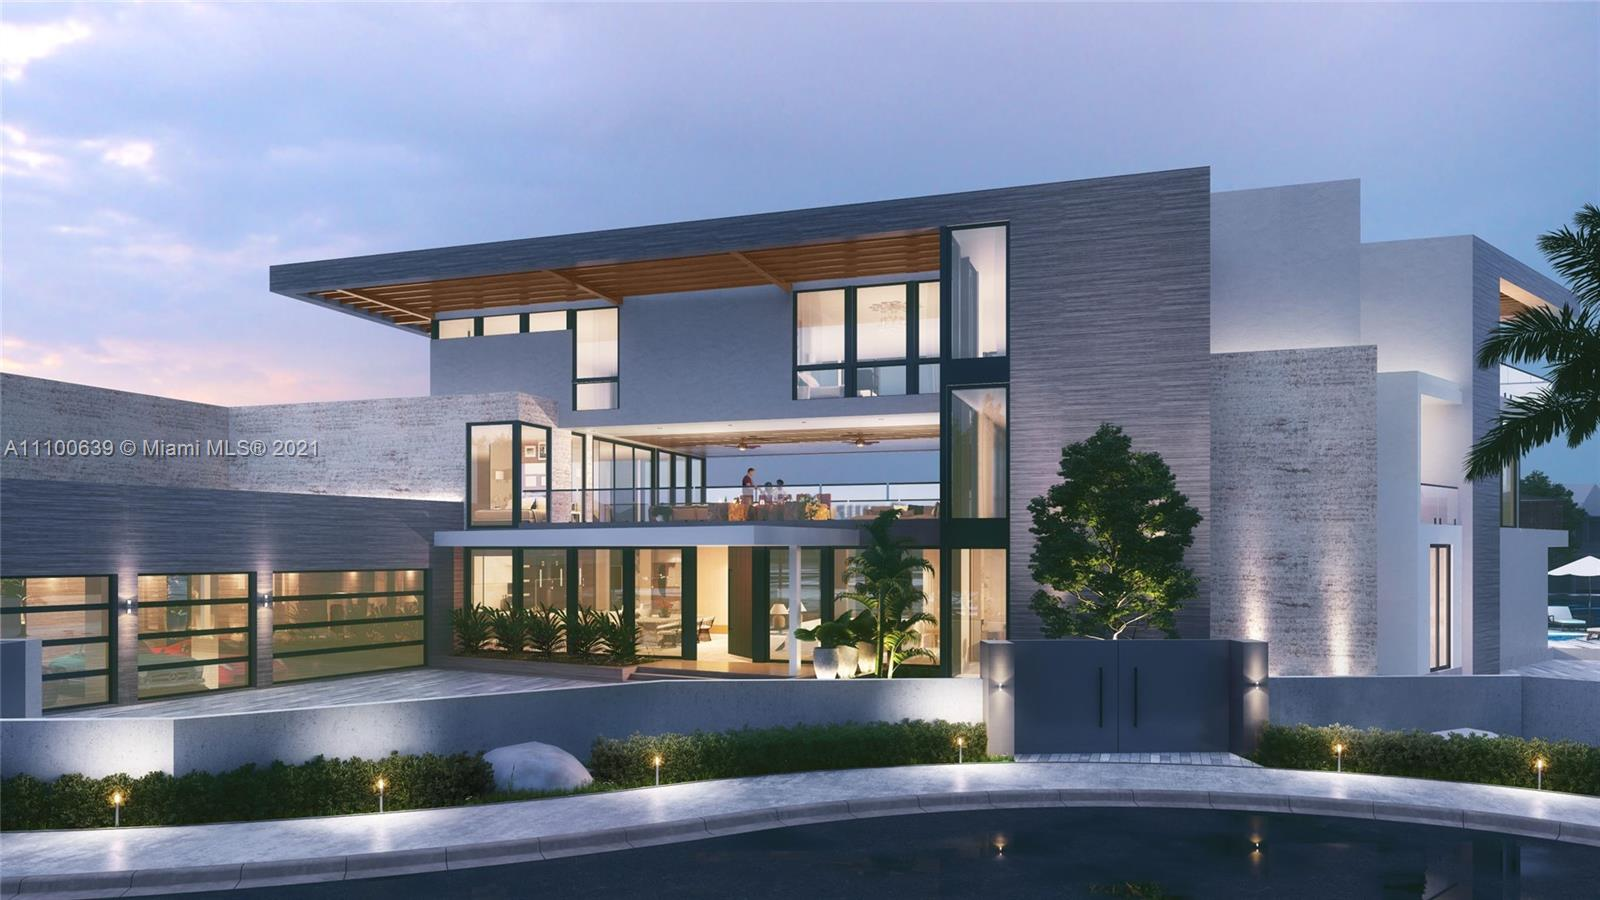 One of the best homes built in Fort Lauderdale. Designed by Affiniti Architects with 185' of waterfrontage one house in from the point, in sought after Seven Isles. Custom 3-story Modern Masterpiece with intracoastal views. Over 10,000 sq ft 6 Bedrooms 7 Full Baths and 2 Half Baths, Office, Clubroom, Gym, 4 car garage, and much more.